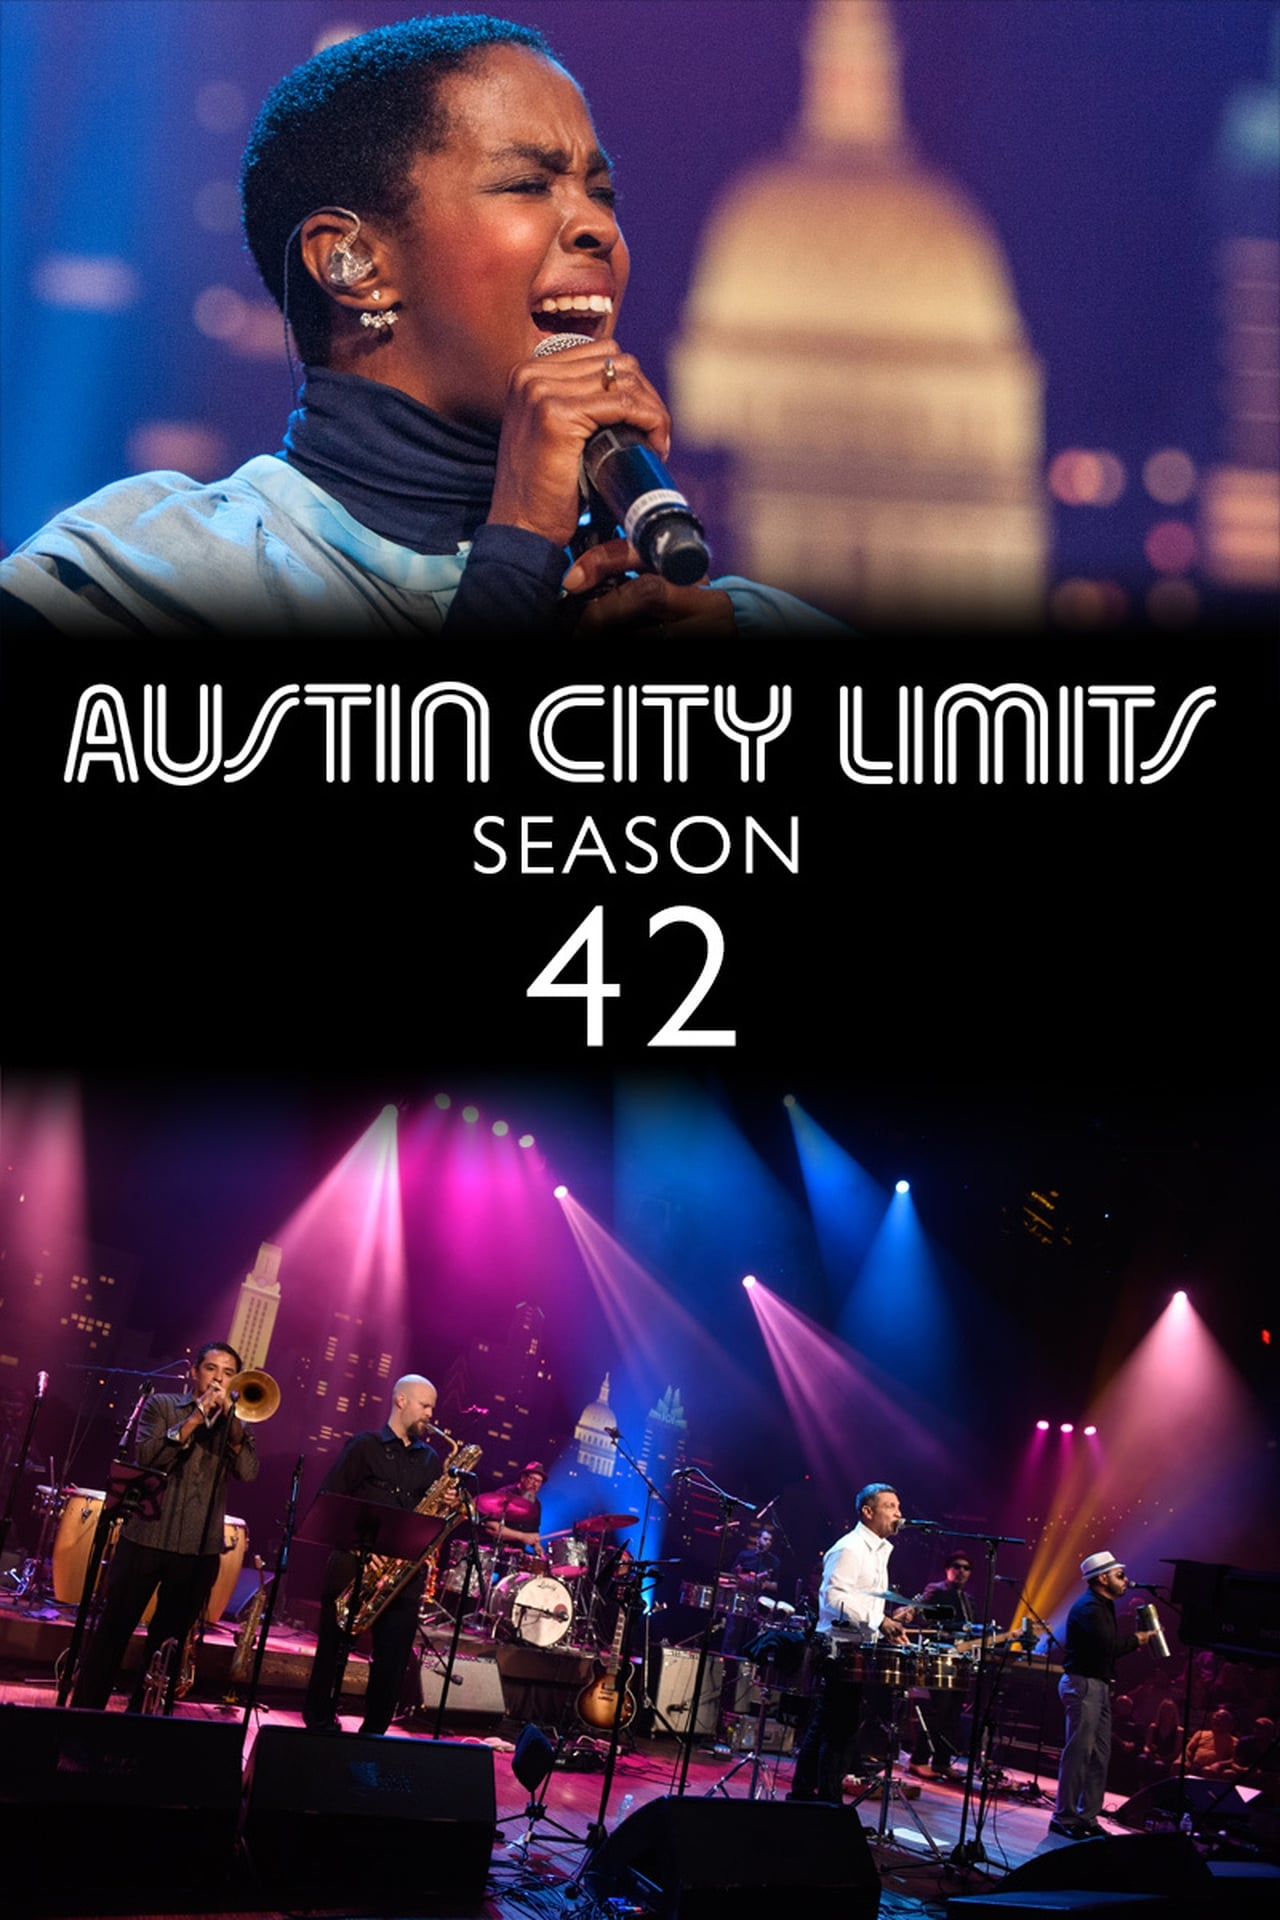 Austin City Limits Season 42 (2016) putlockers cafe